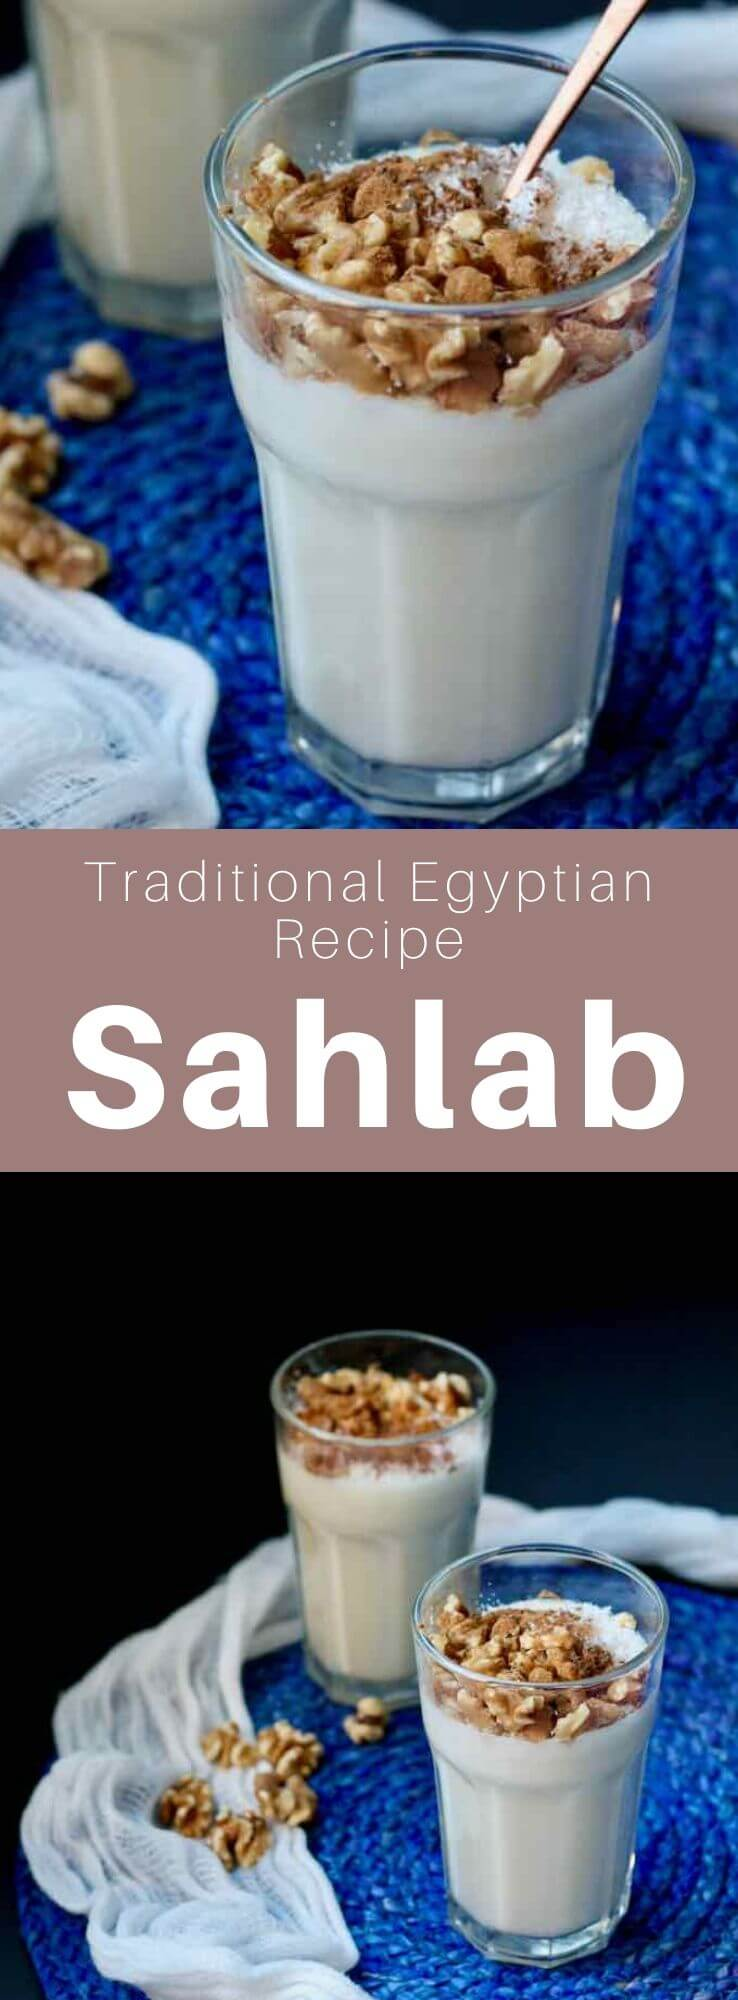 Sahlab (salep) is a popular creamy hot drink in the cuisines of the former Ottoman empire, prepared with sahlab obtained from the dried tubers of an orchid. #Egypt #EgyptianCuisine #EgyptianFood #EgyptianRecipe #WorldCuisine #196flavors